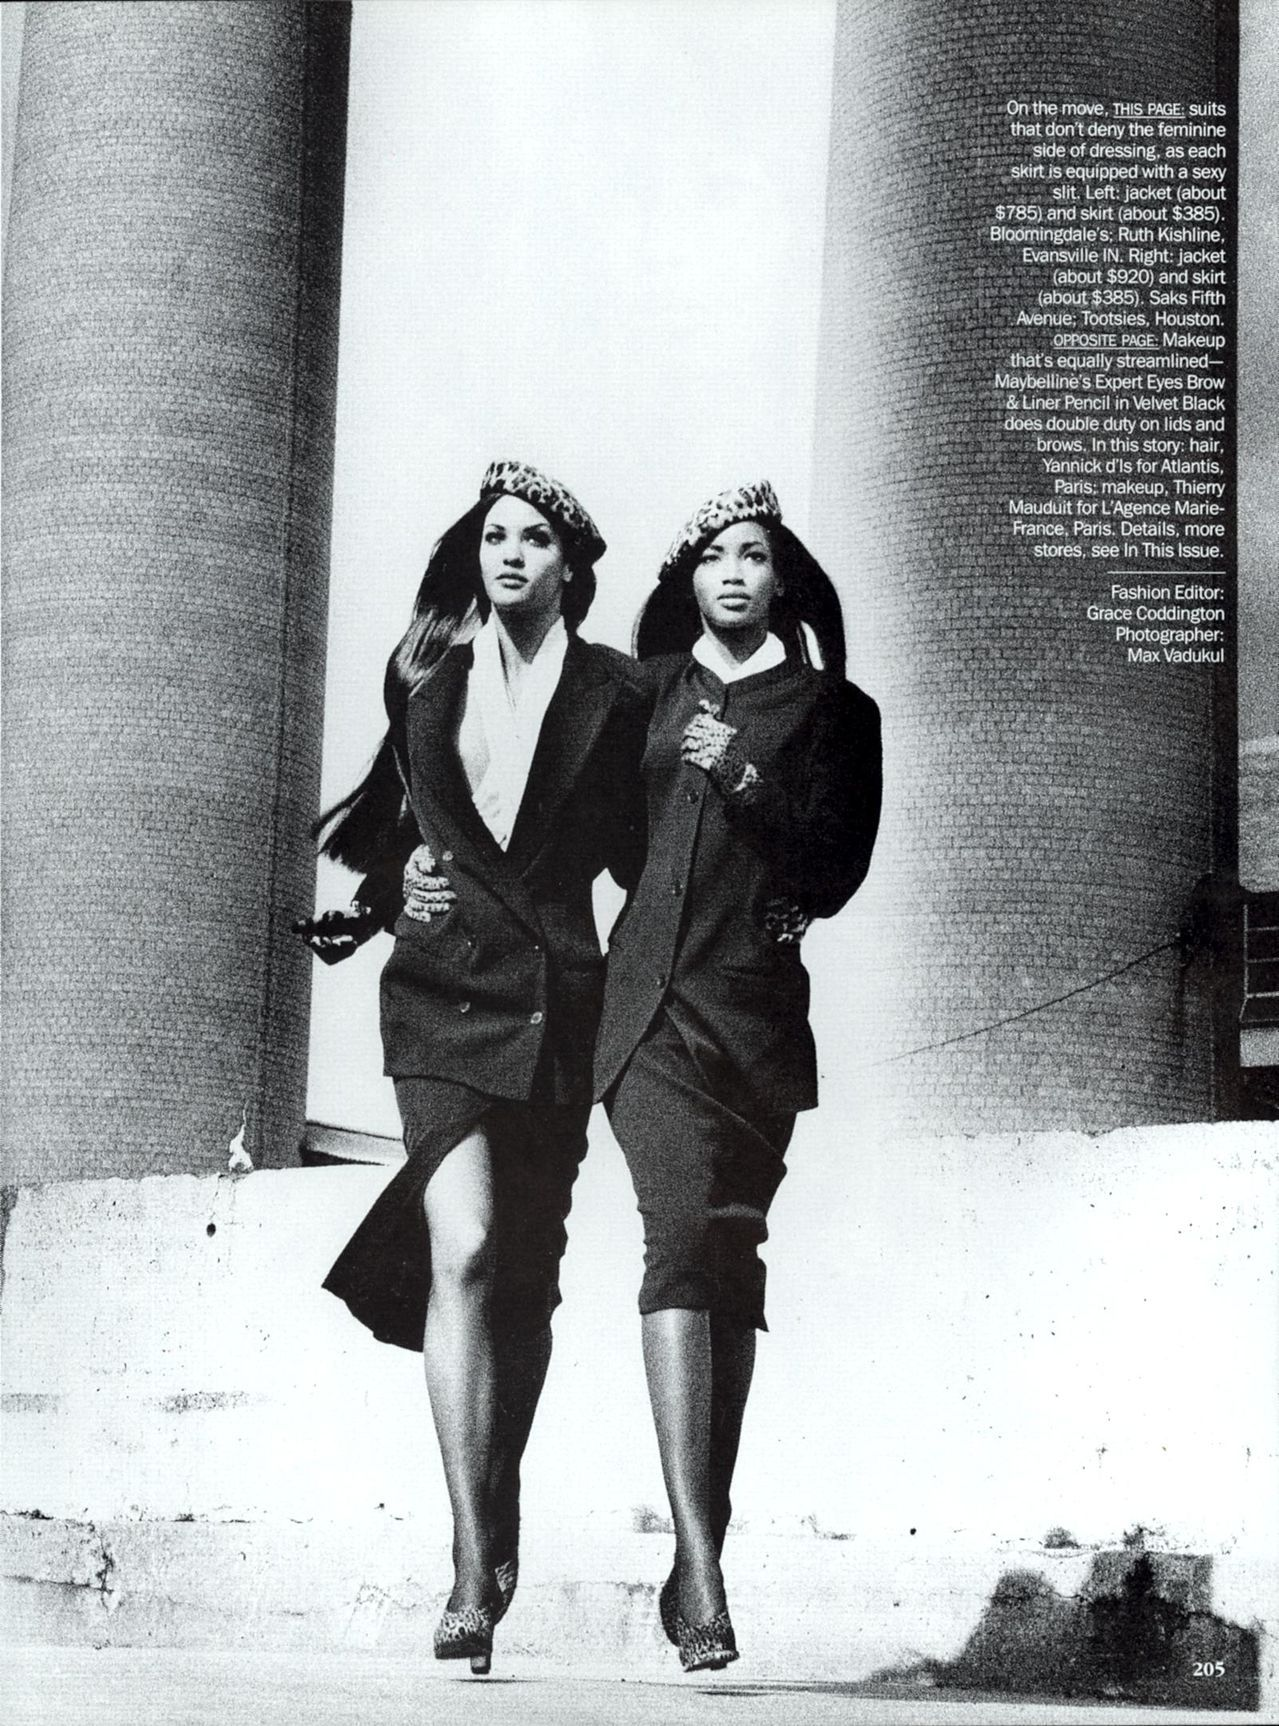 Claudia Mason & Beverly Peele in Modern Times for Vogue, August 1992 Shot by Max Vadukul Styled by Grace Coddington